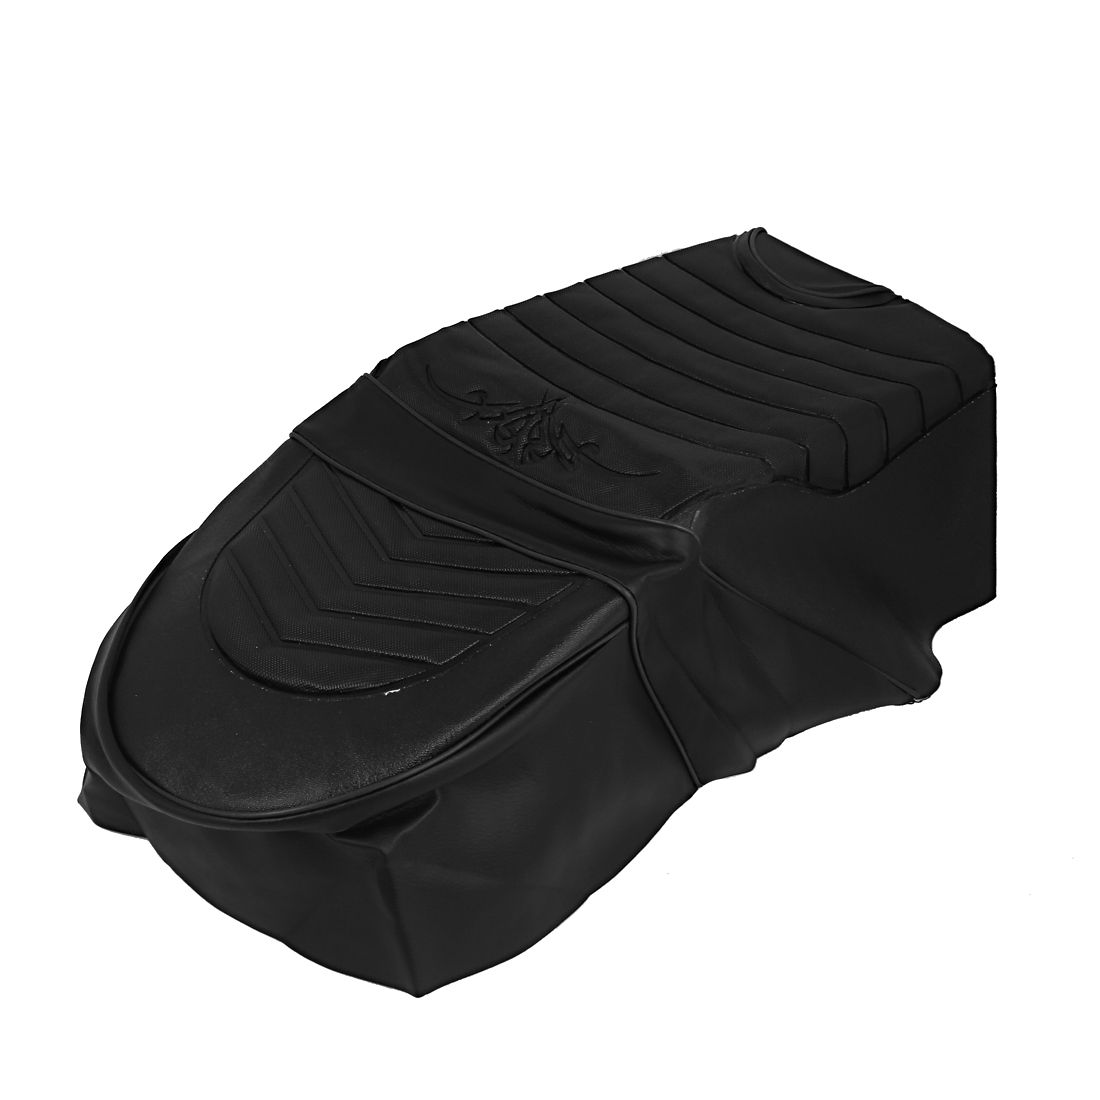 Waterproof Scooter Seat Cover Motorcycle Rain Protection Black for Yamaha Force